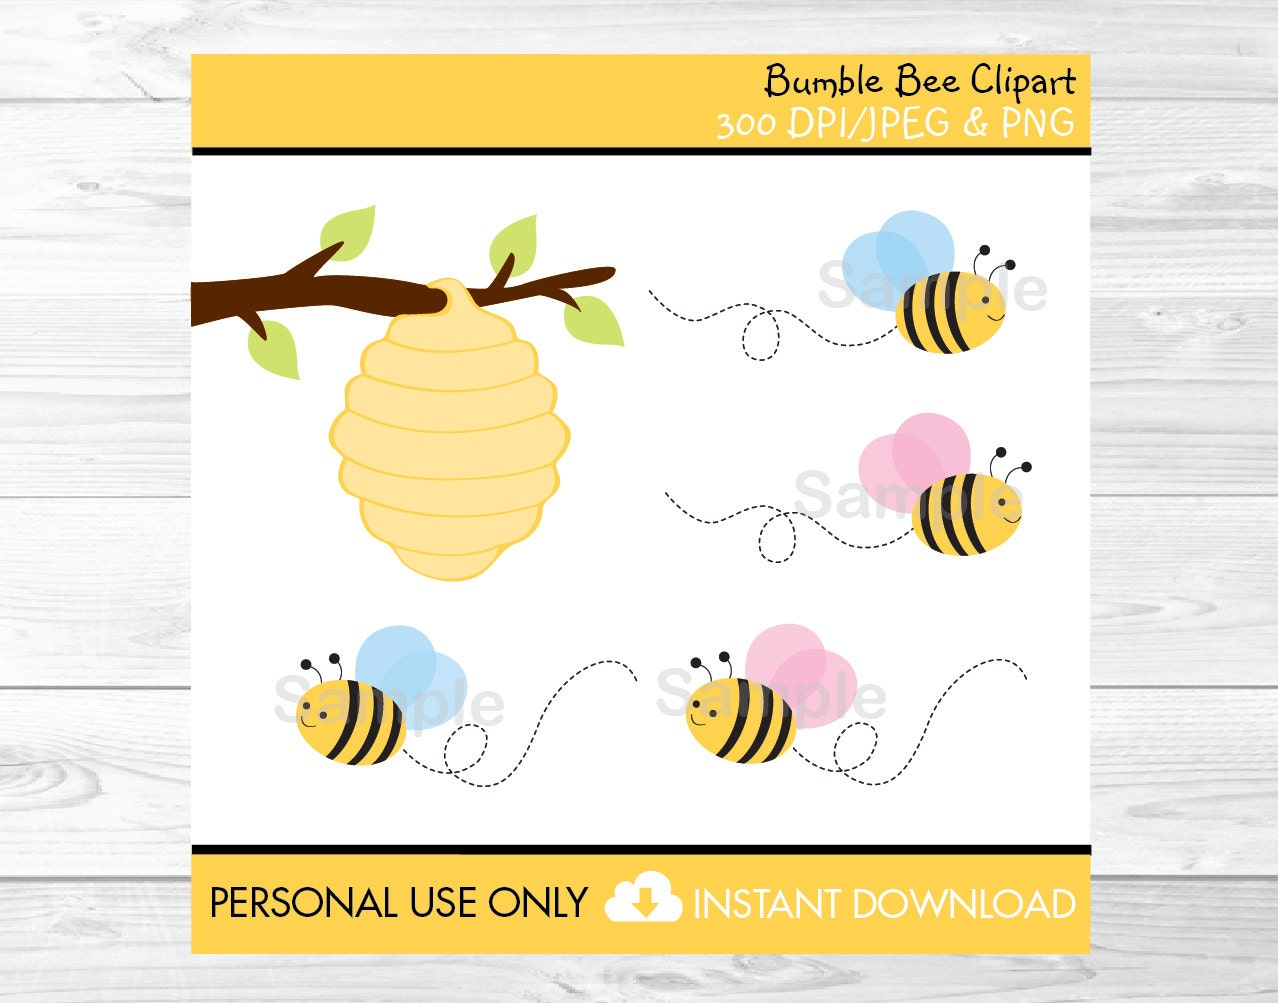 Bumble Bee Clipart Beehive Clip Art Pink & Blue Bumble Bee